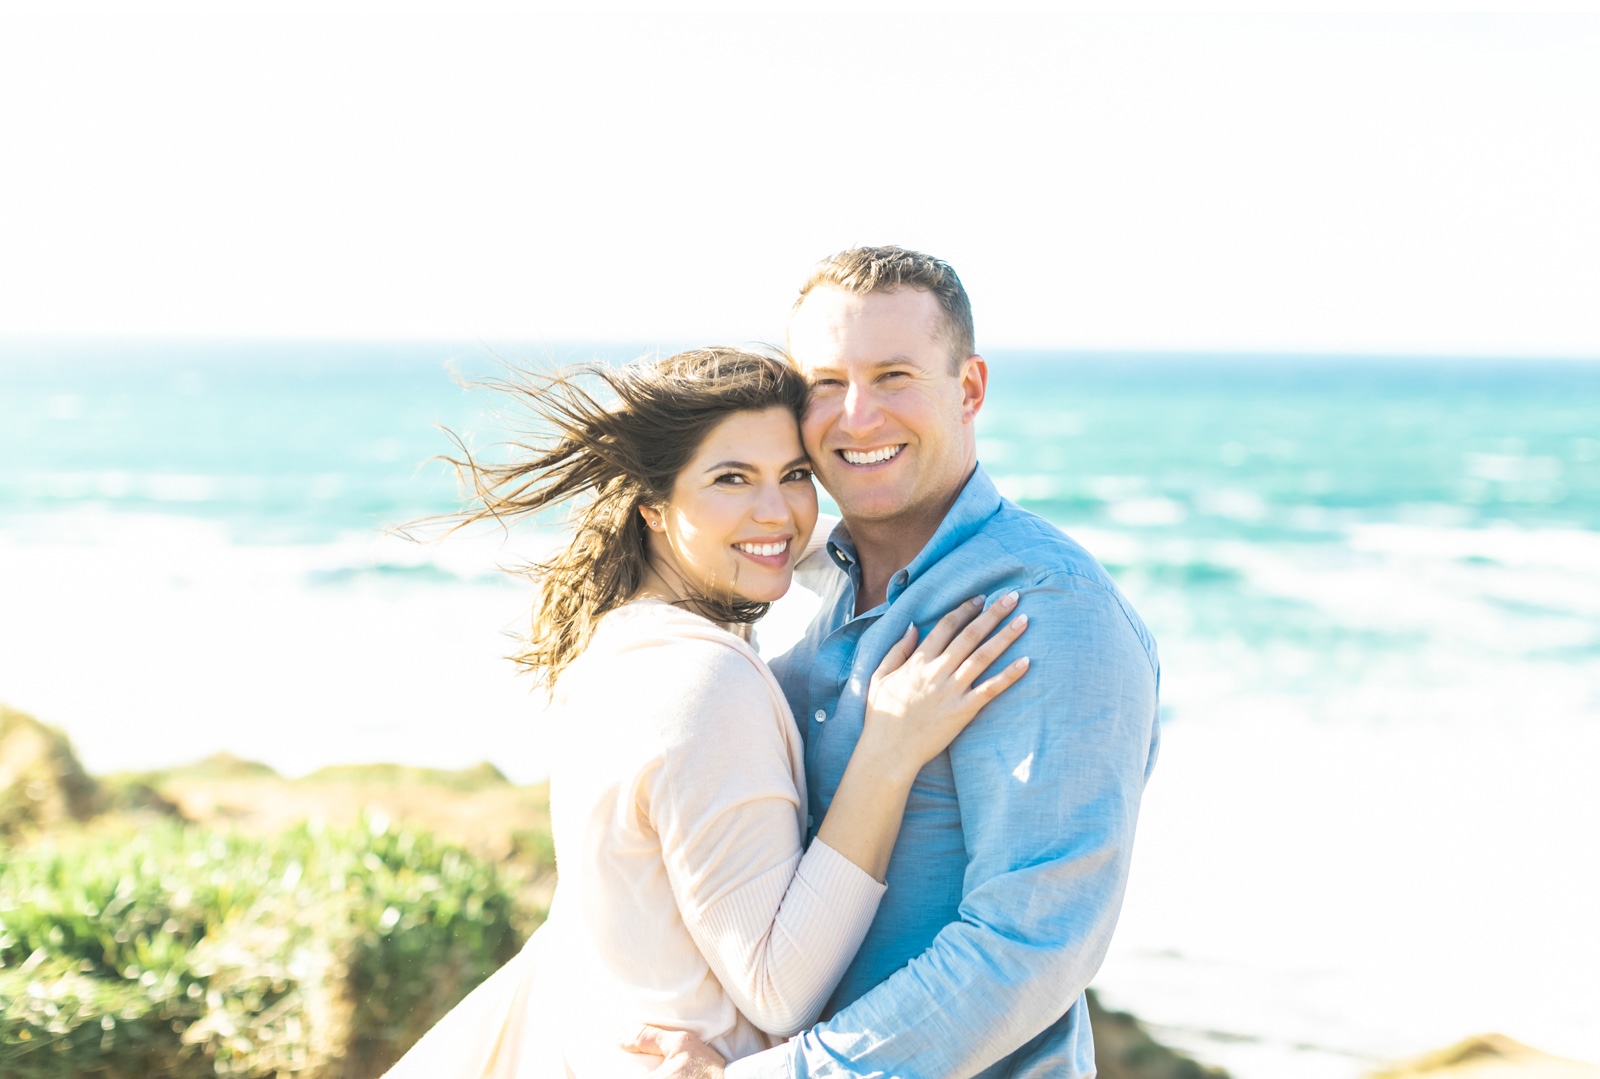 Professional-Wedding-Photographer-Southern-California-Weddings-Malibu-Engagement-Natalie-Schutt-Photography-Style-Me-Pretty-Beachside-Engagement_05.jpg